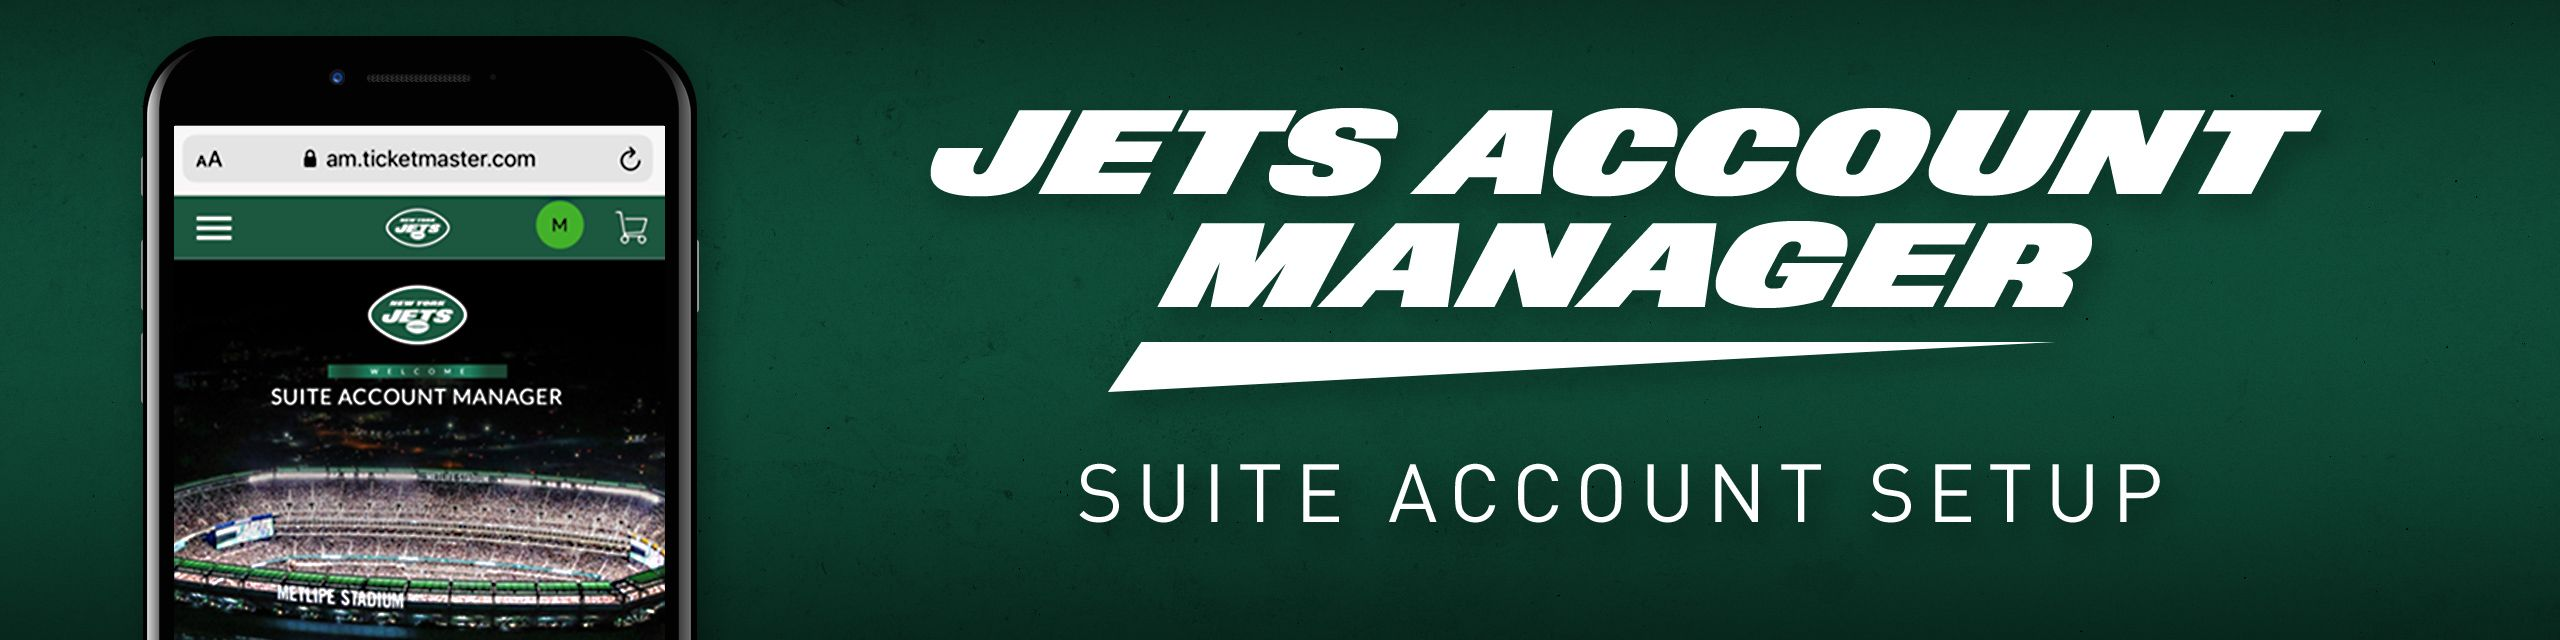 SUITES-ACCOUNT-MANAGER-INSTRUCTIONS-HEADER